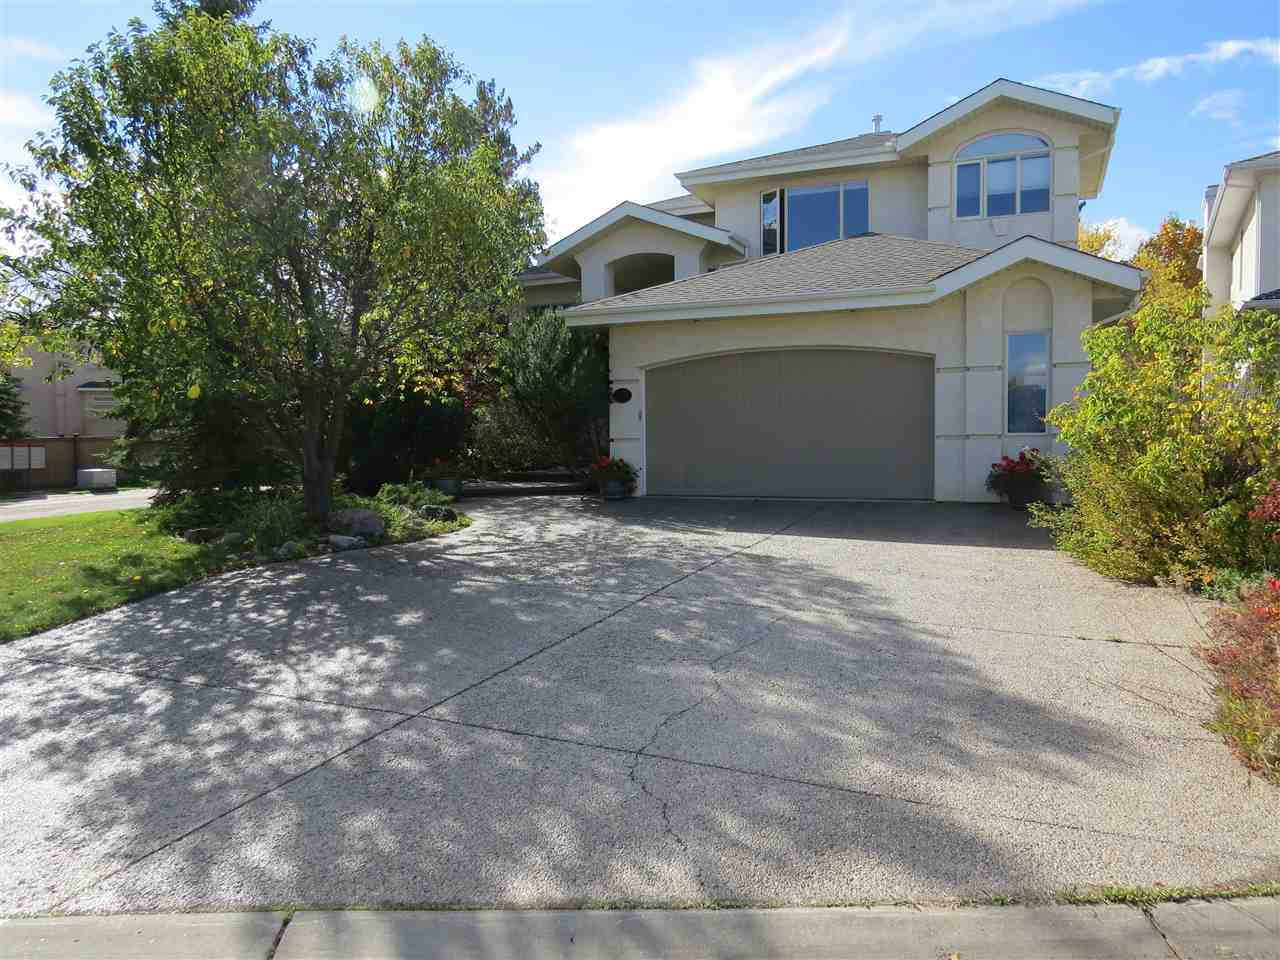 Main Photo: 716 BUTTERWORTH Drive in Edmonton: Zone 14 House for sale : MLS(r) # E4062703